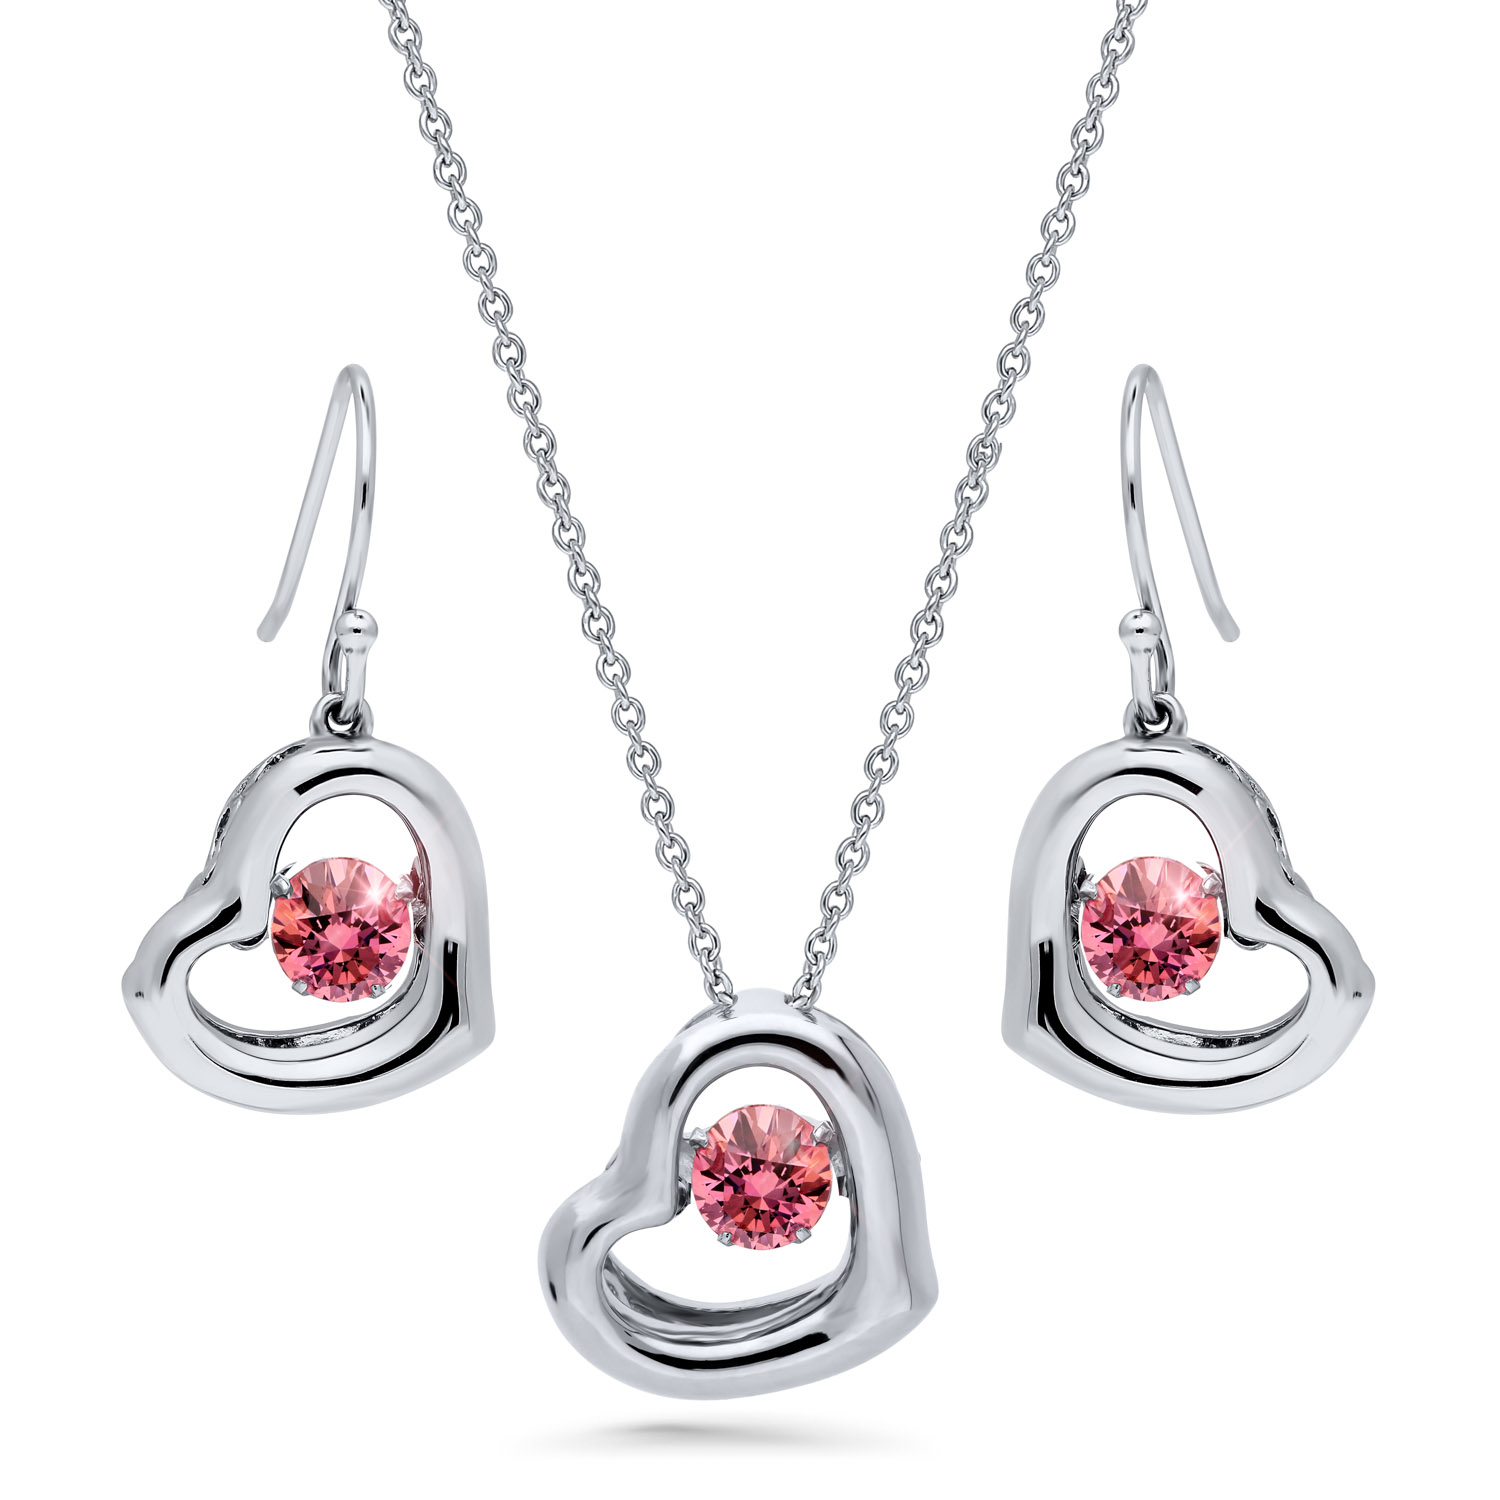 Platinum and Rhodium Plated Sterling Silver Cubic Zirconia Cubic Zirconia Open Heart Necklace and Earrings Set by BERRICLE